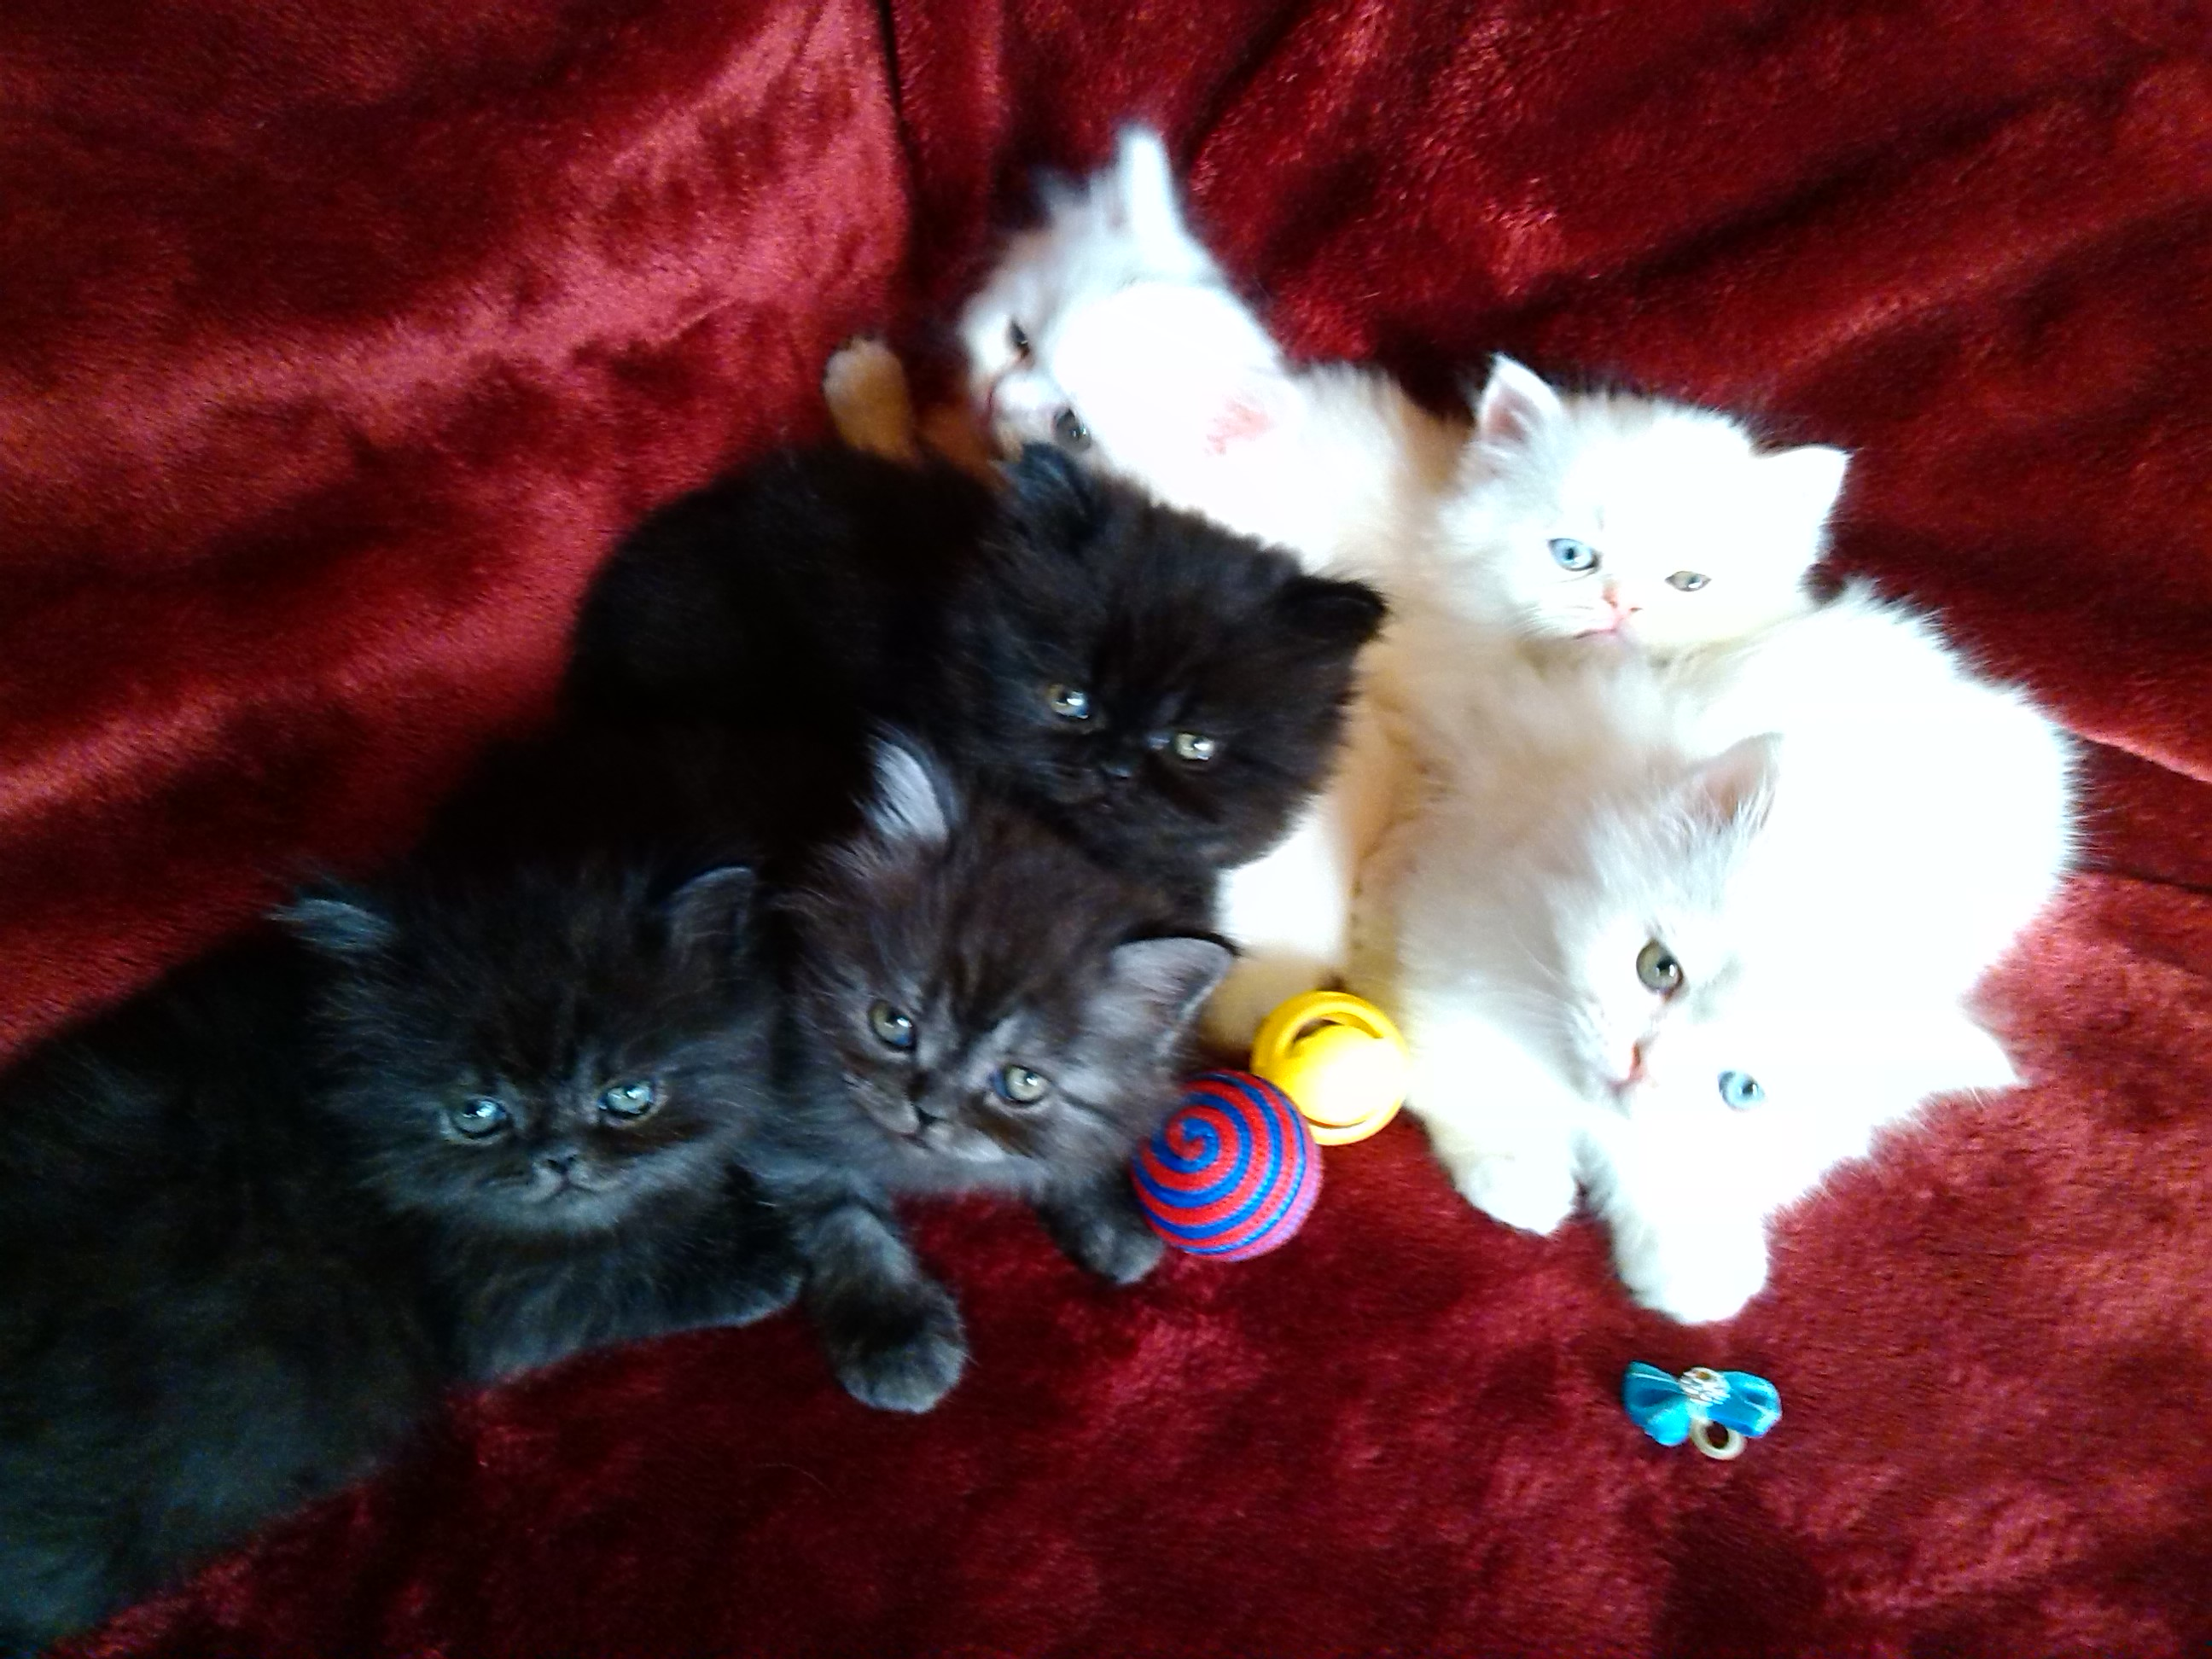 We are a responsible and reputable breeder of Persian and Himalayan cats located in the Missouri Ozarks.